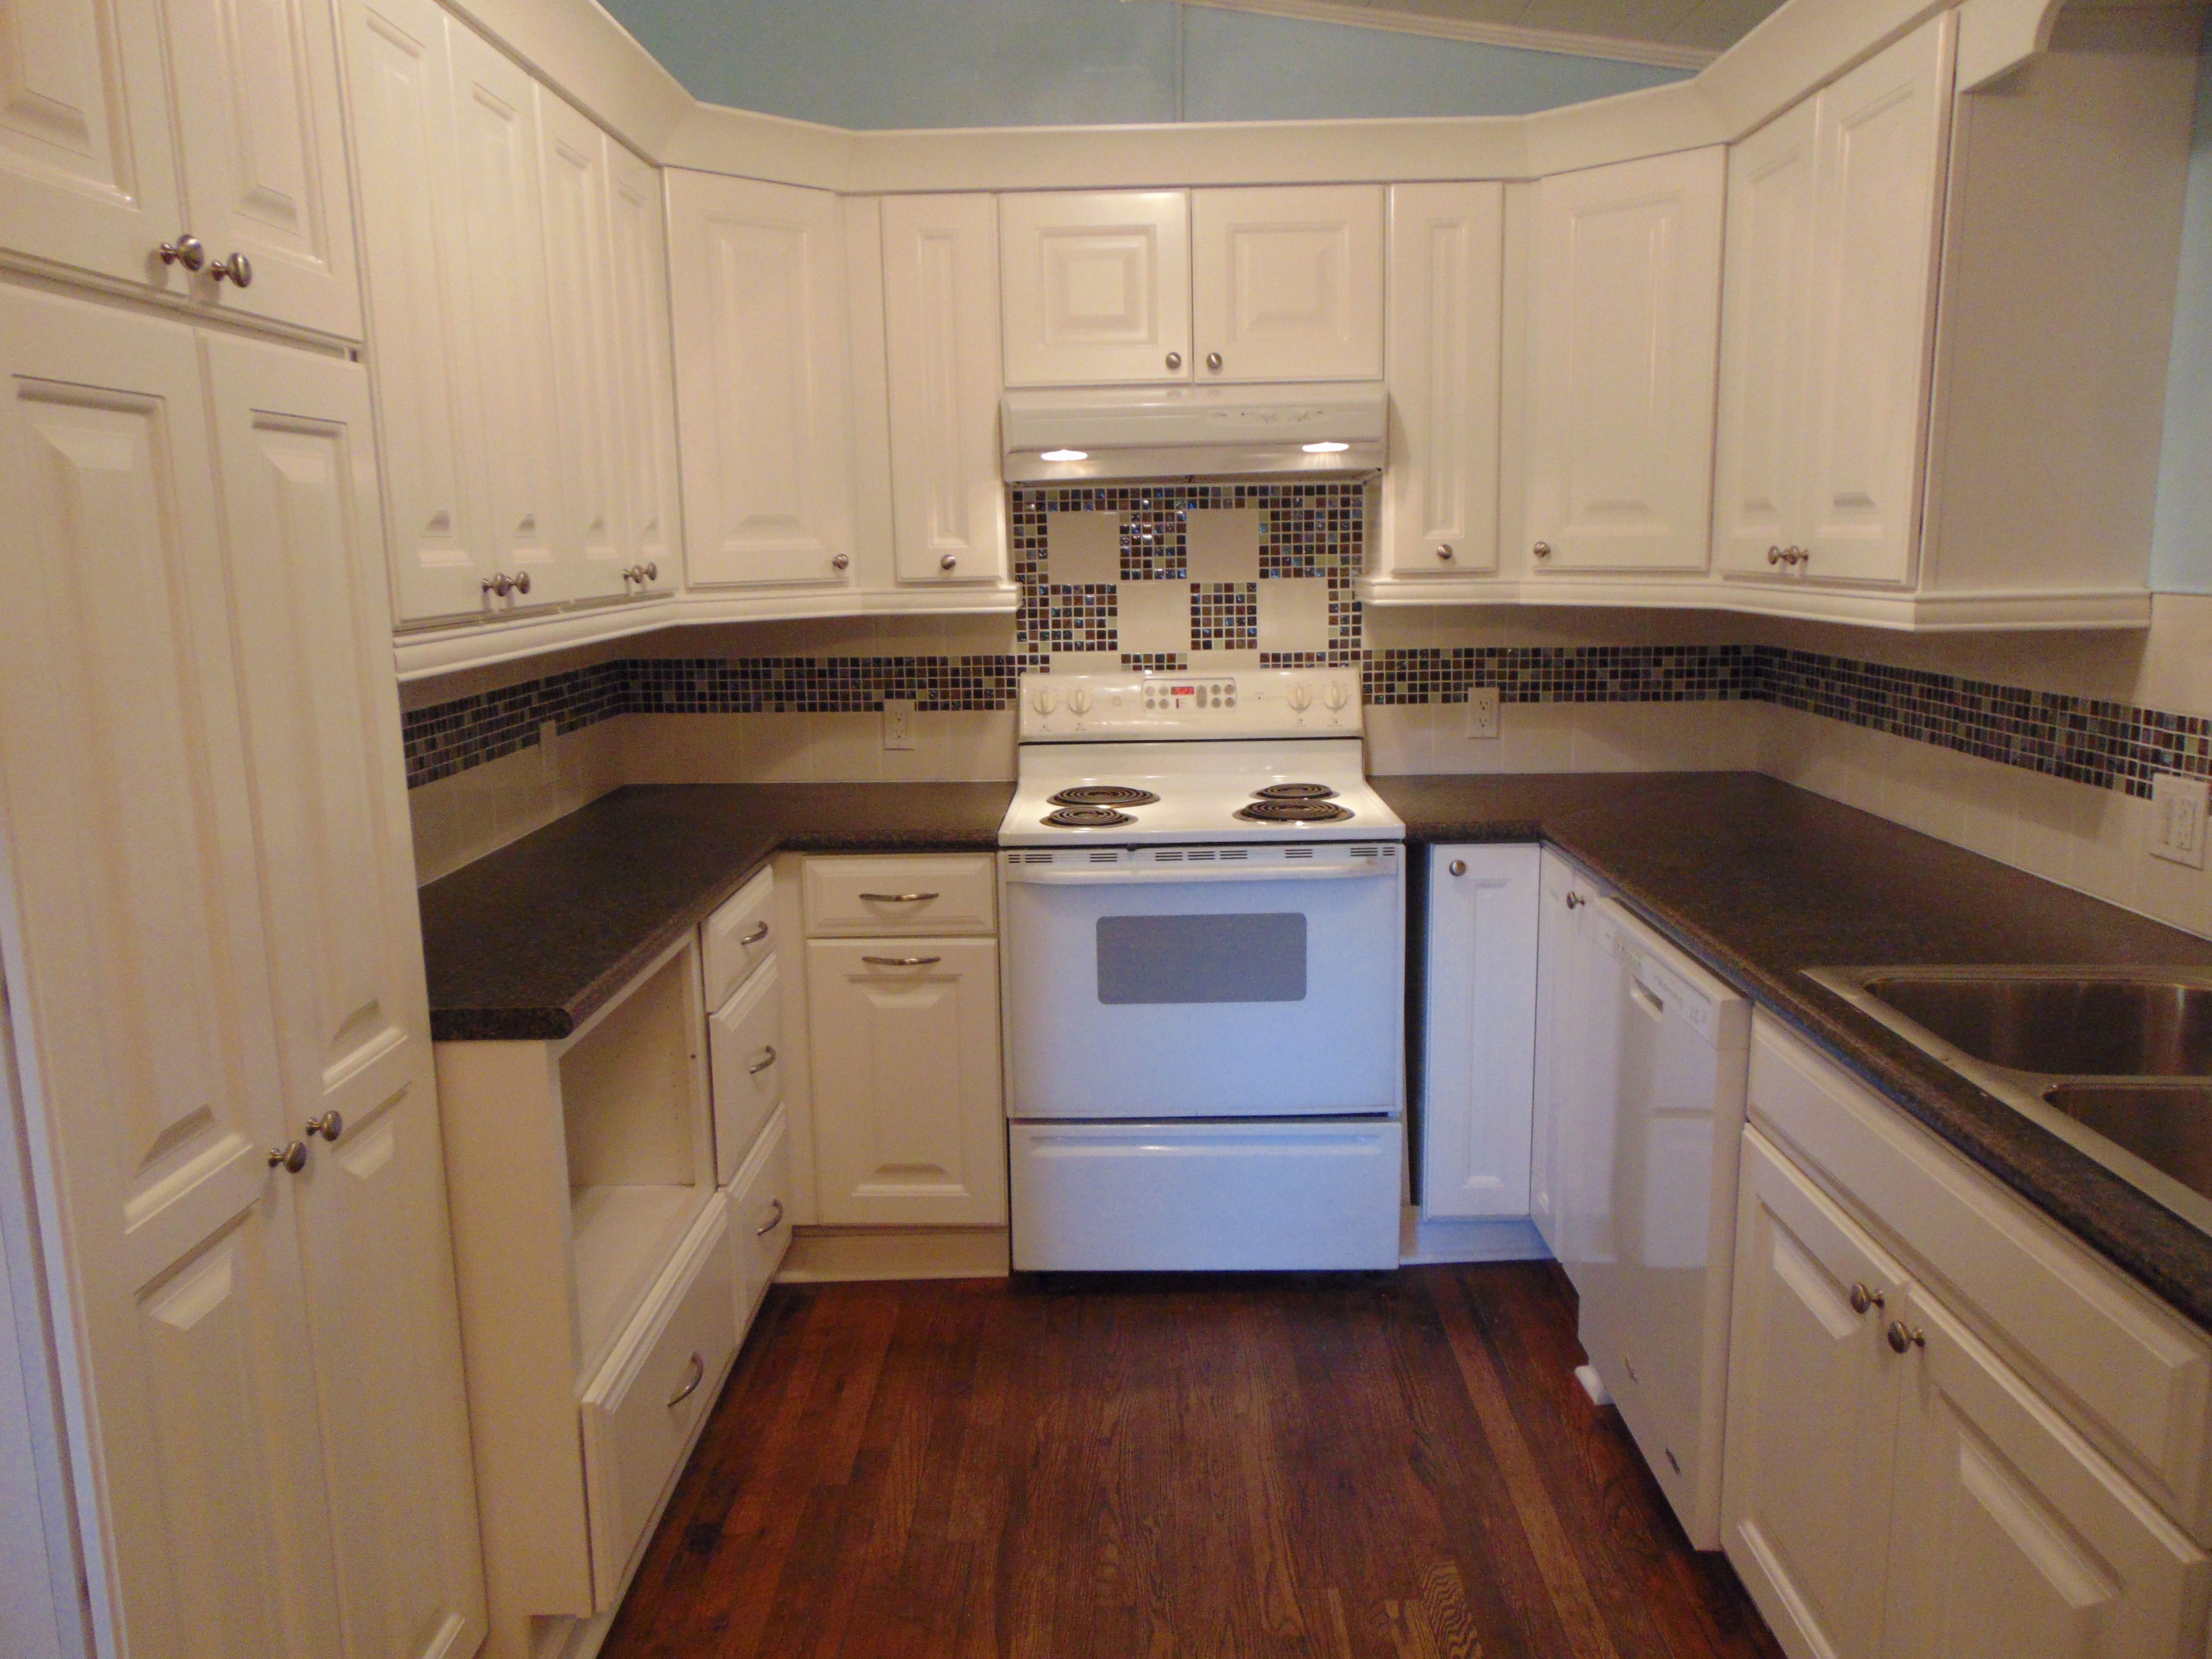 Remodeled kitchen is wheelchair accessible and features white